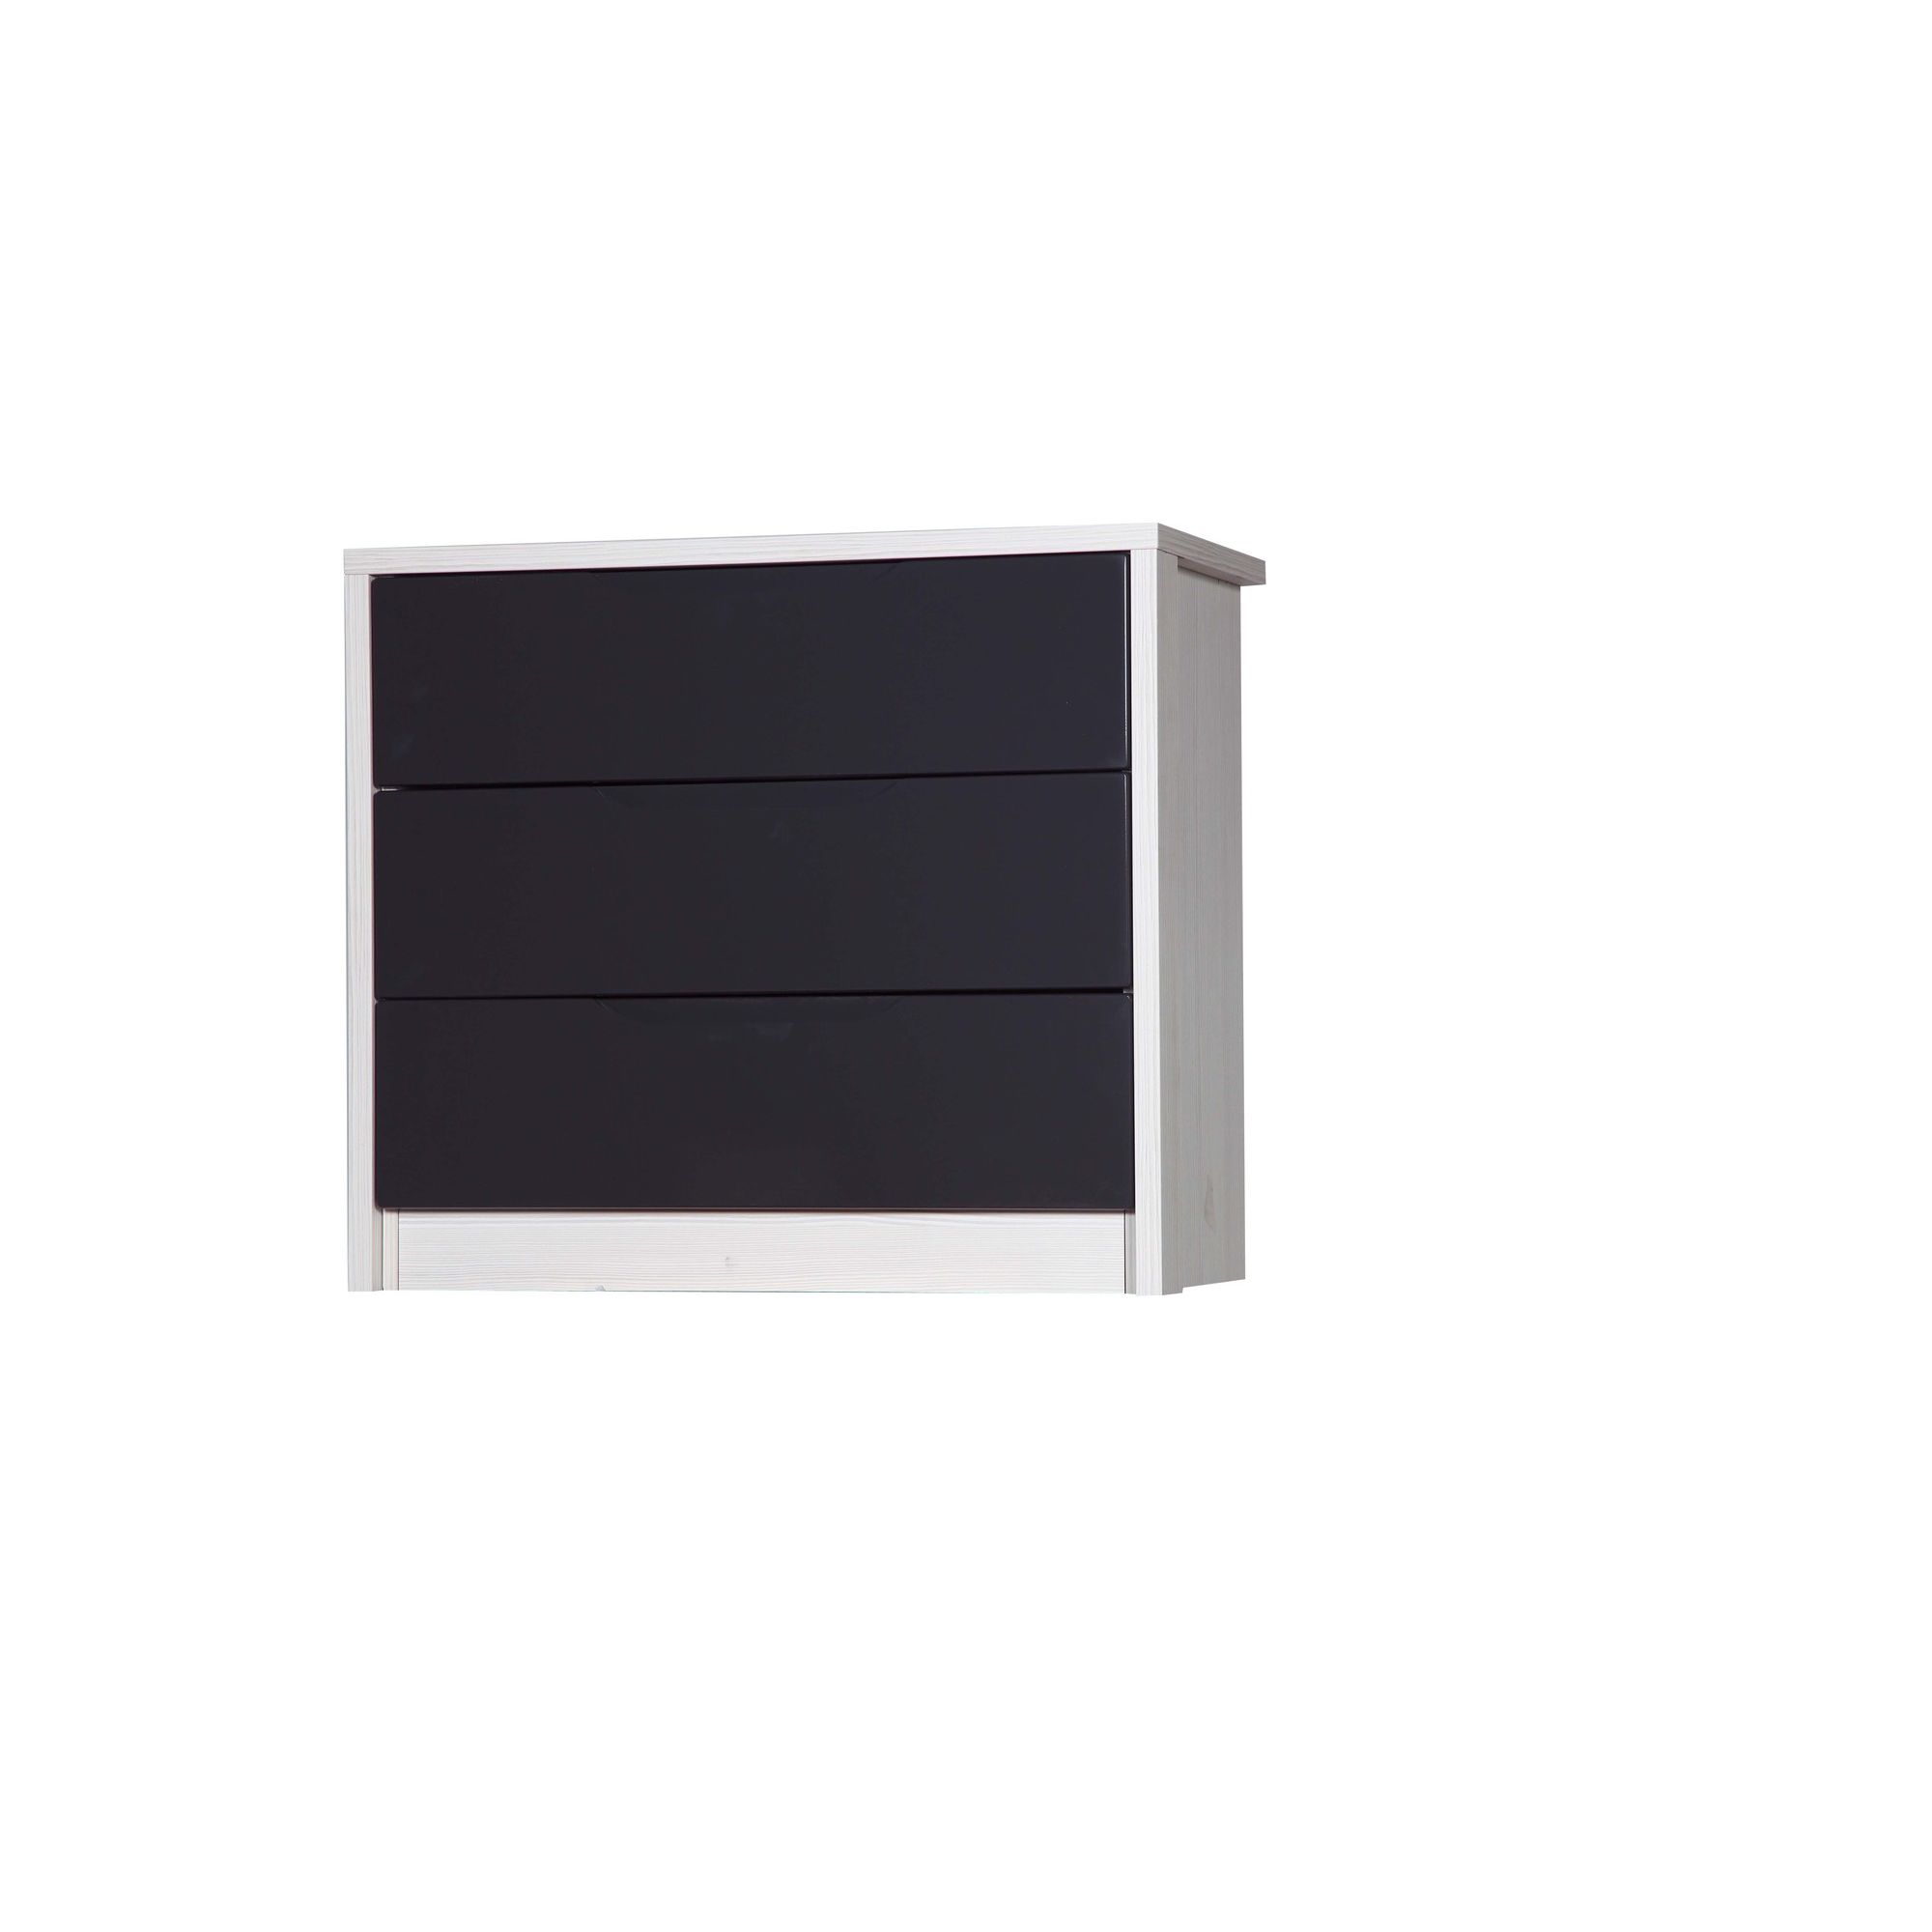 Alto Furniture Avola 3 Drawer Chest - White Avola Carcass With Grey Gloss at Tesco Direct